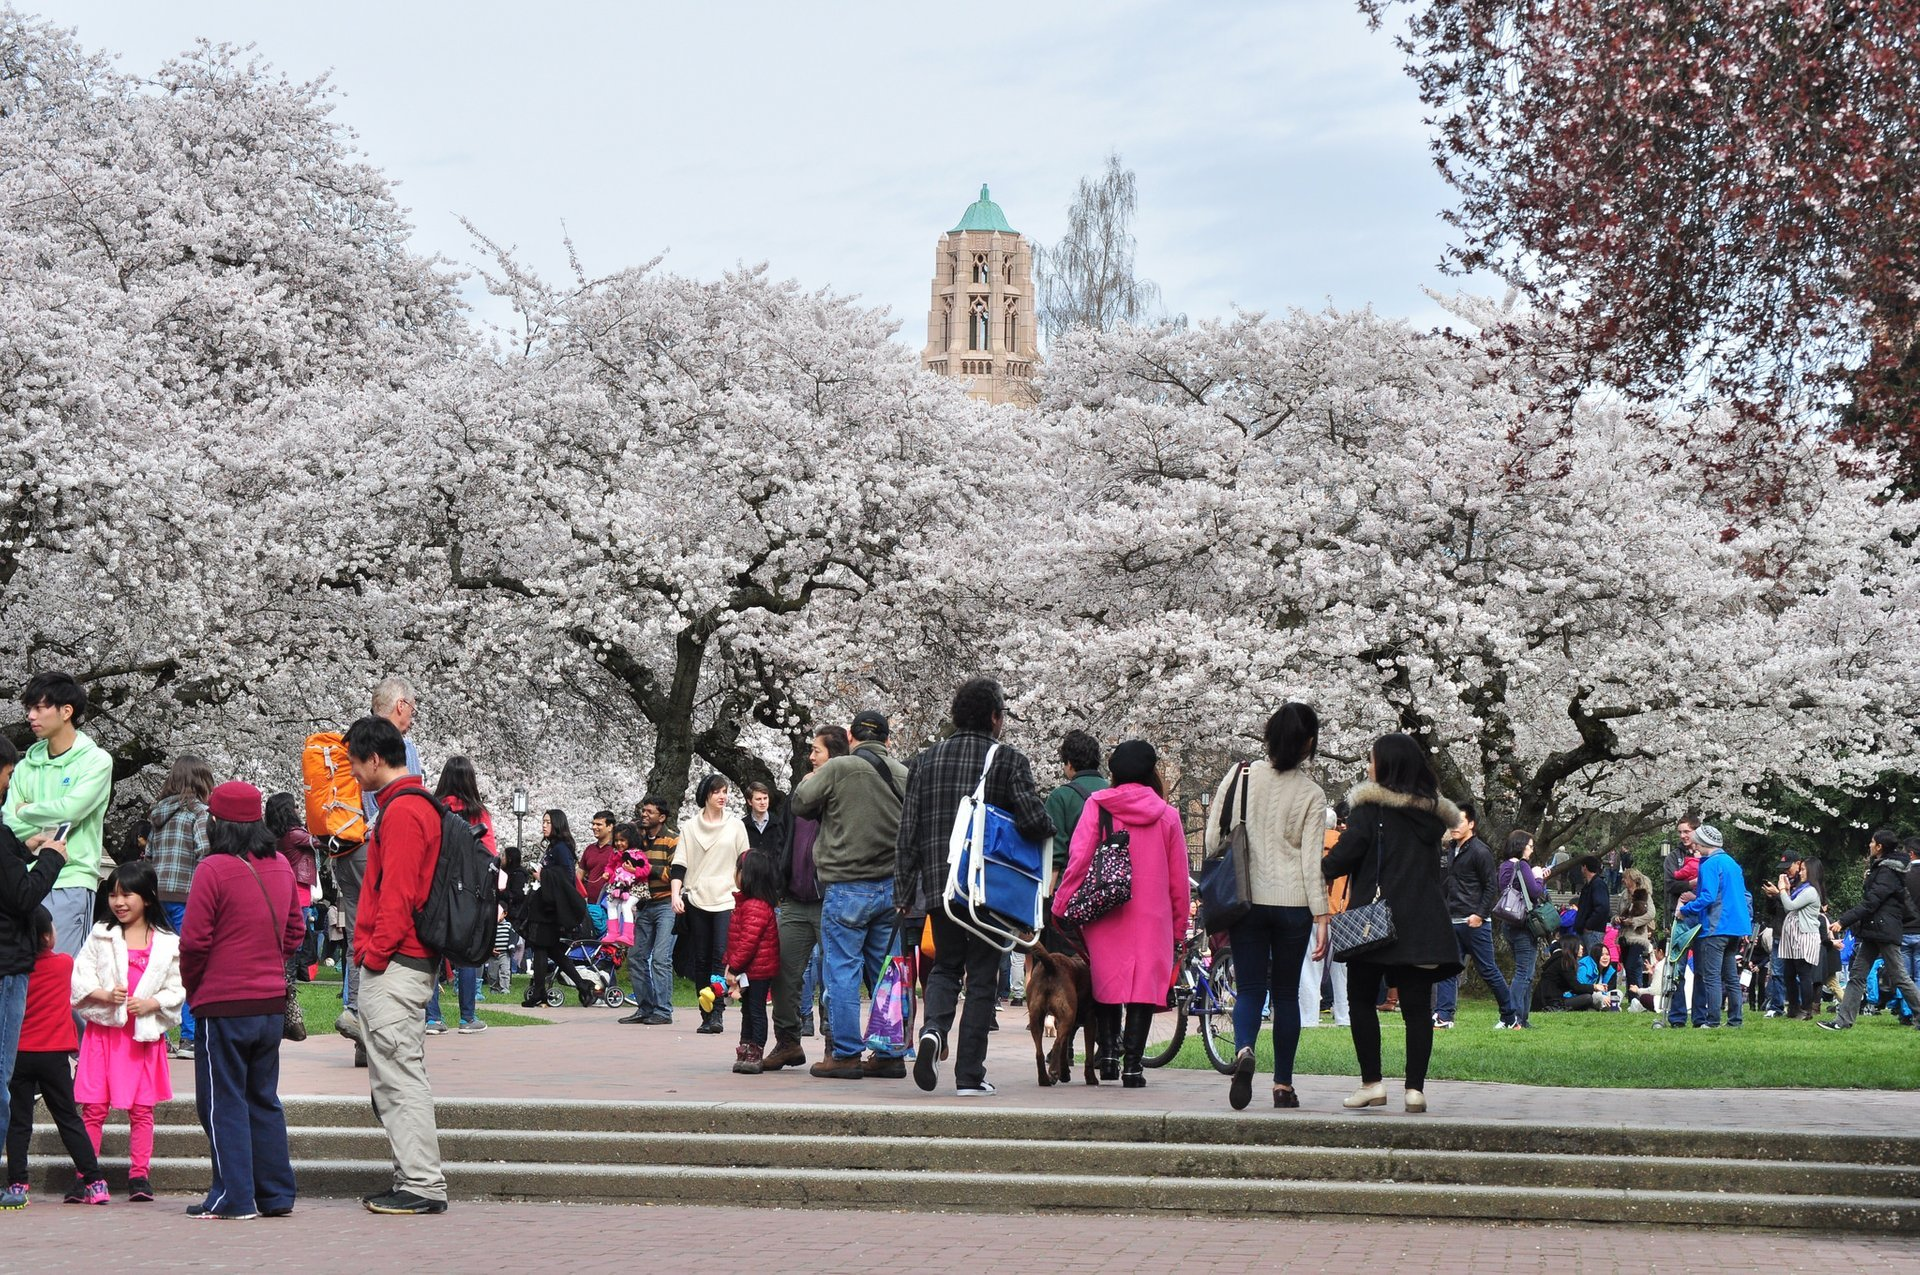 University of Washington (Seattle) during cherry blossom time 2020